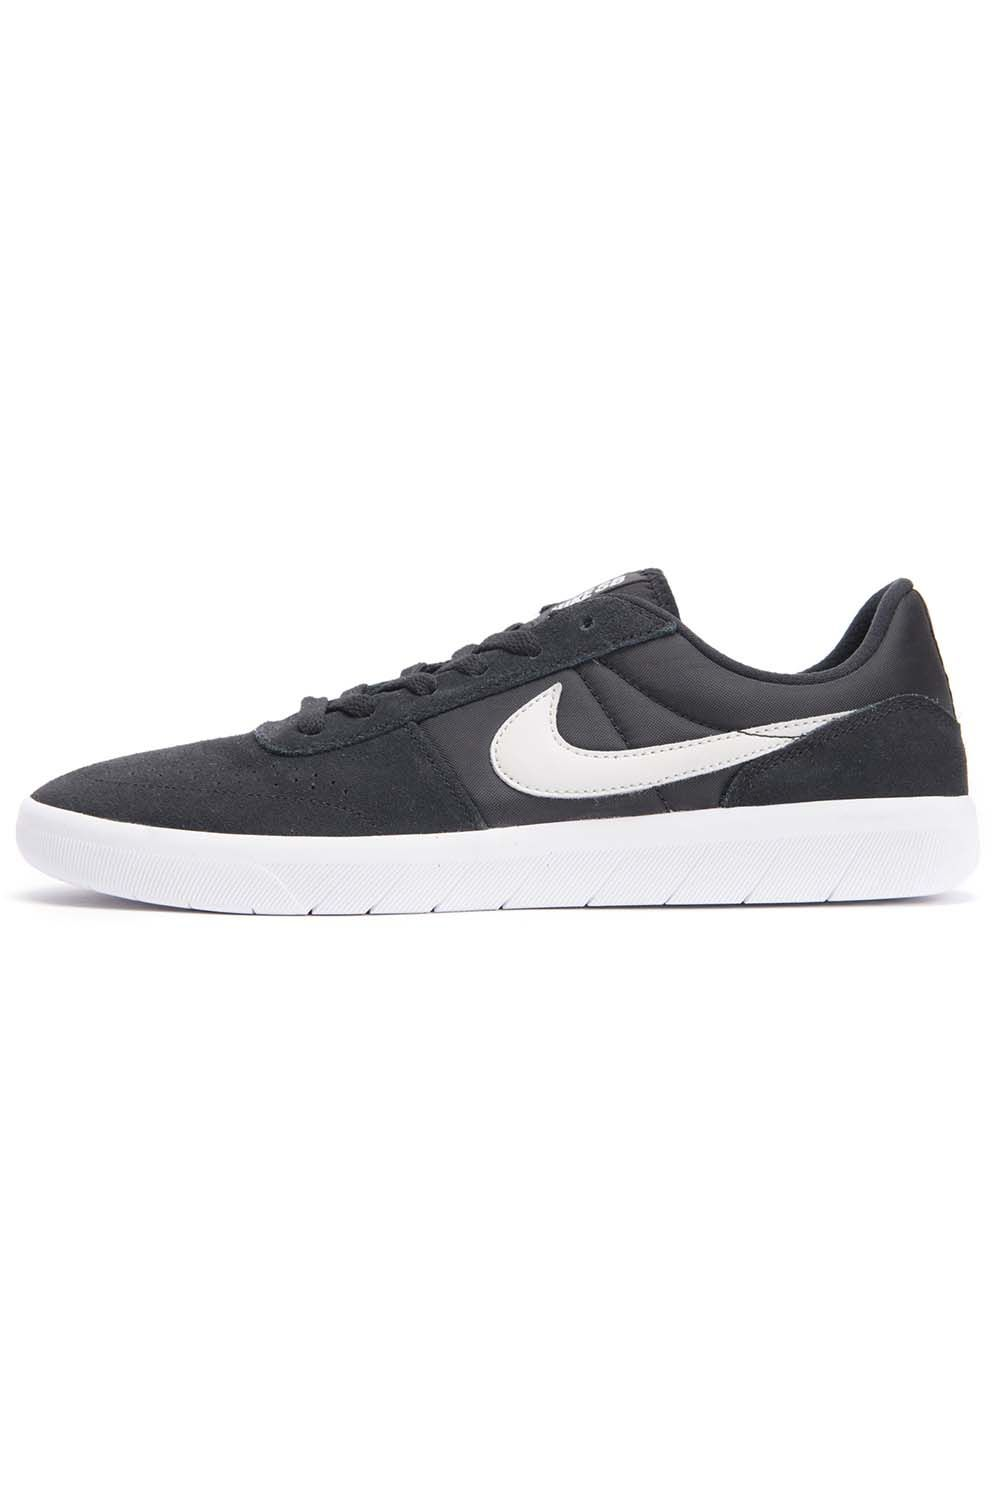 Tenis Nike Sb TEAM CLASSIC Black/Lt Bone-White